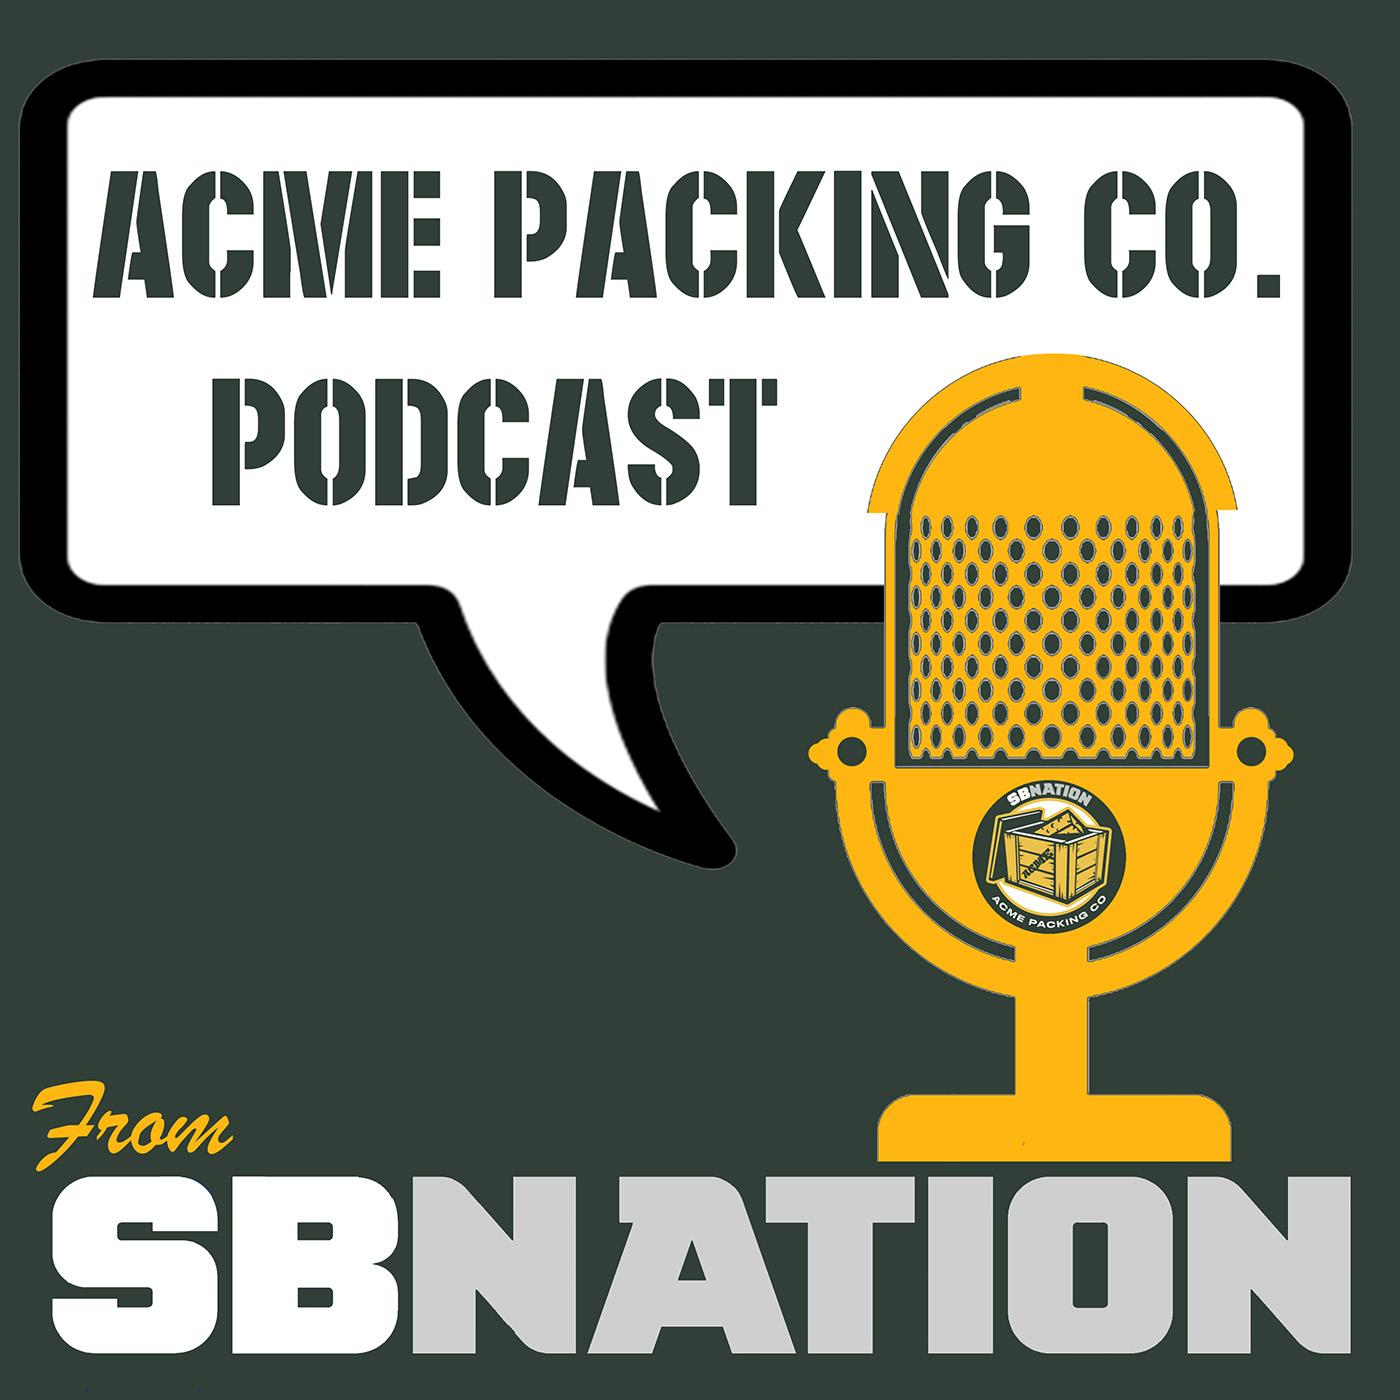 APC Podcast: Packers Talk From SB Nation